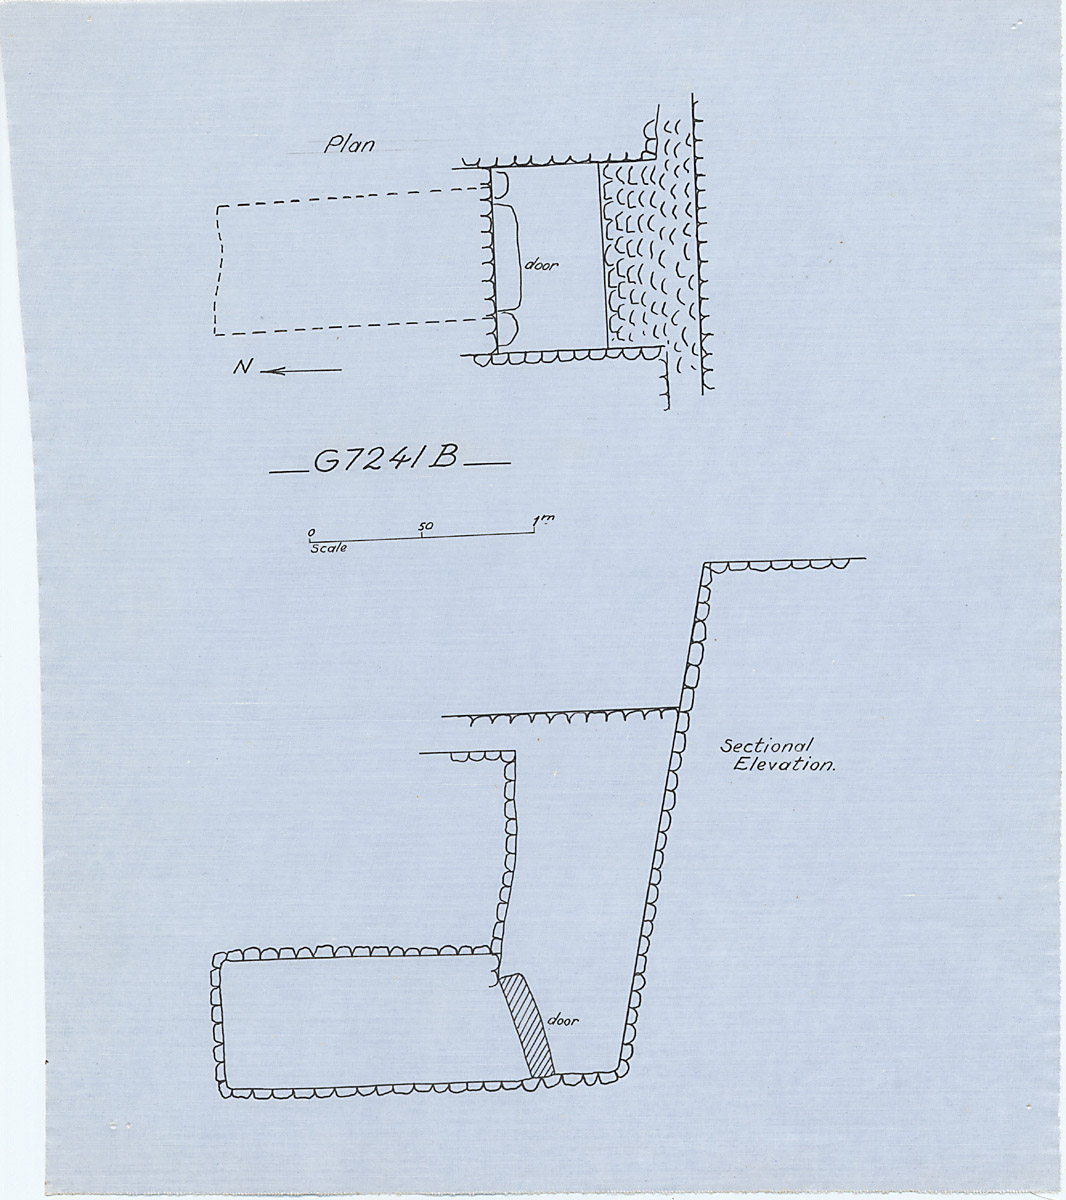 Maps and plans: G 7241, Shaft B